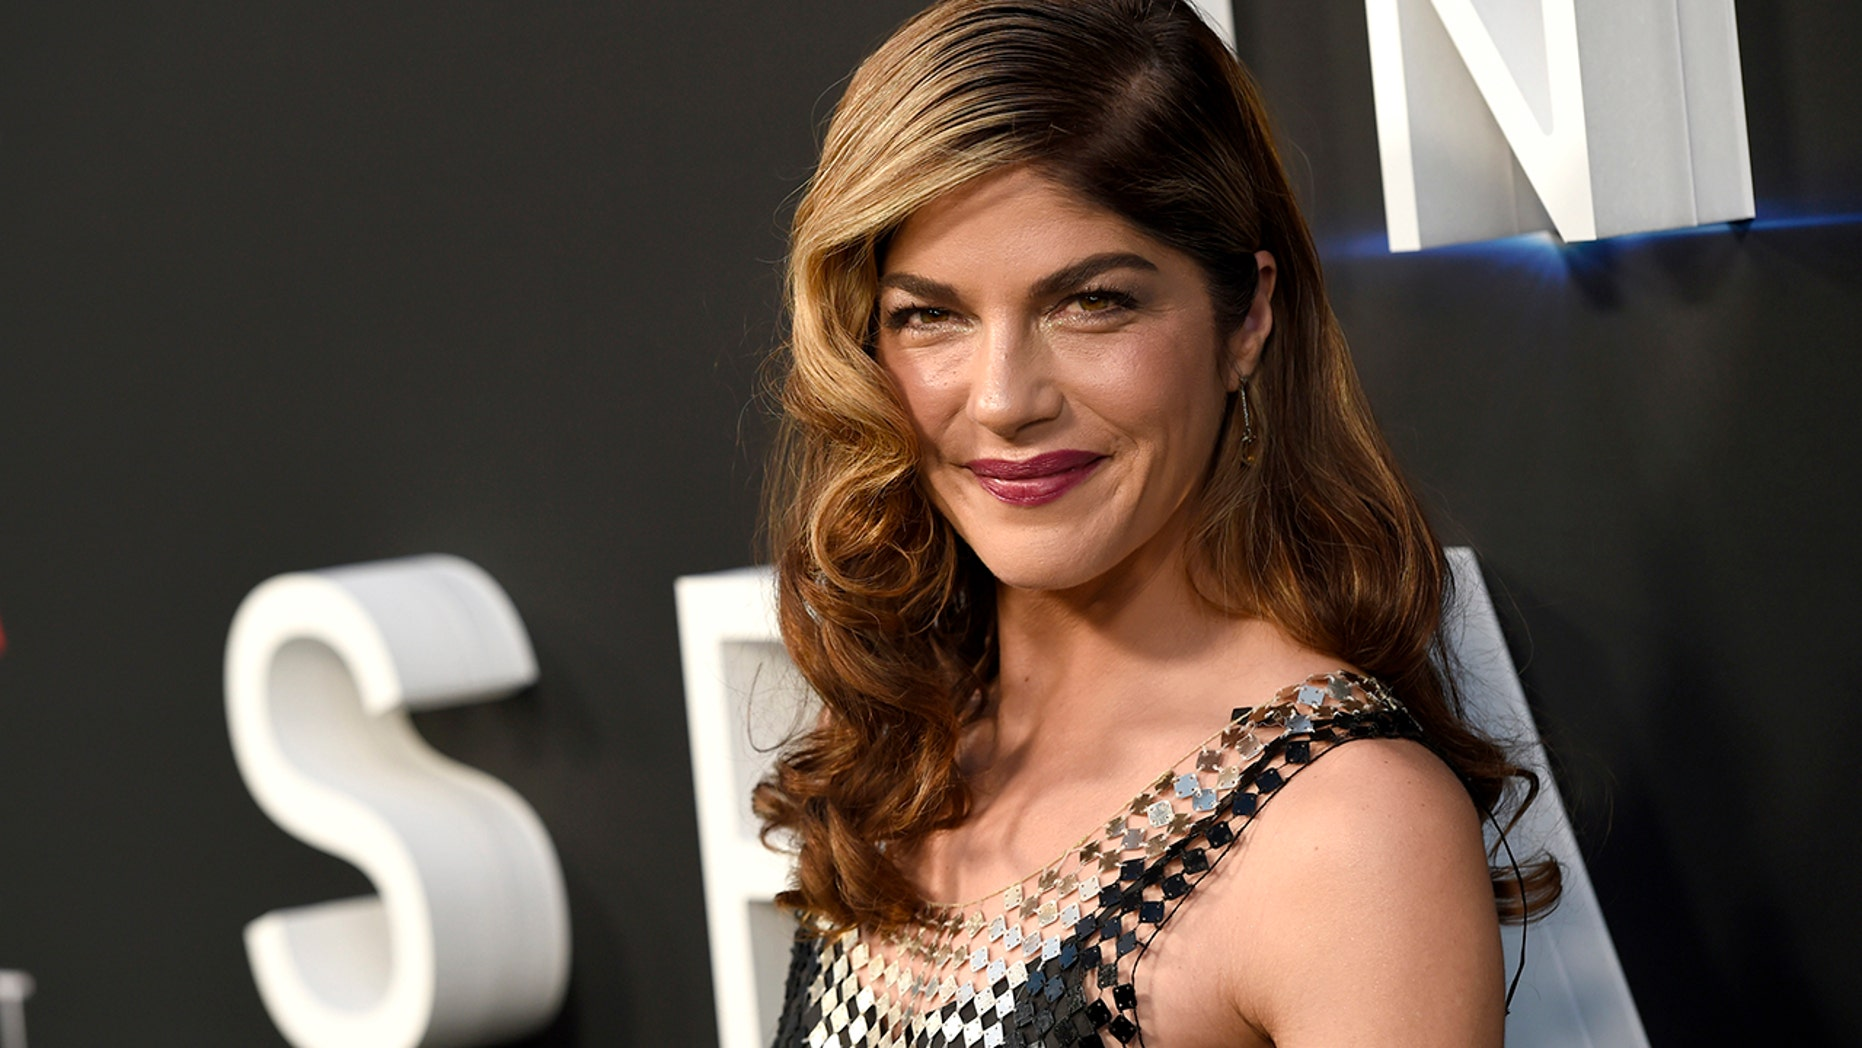 Selma Blair opened up about her MS diagnosis, revealing Michael J. Fox was a huge support.